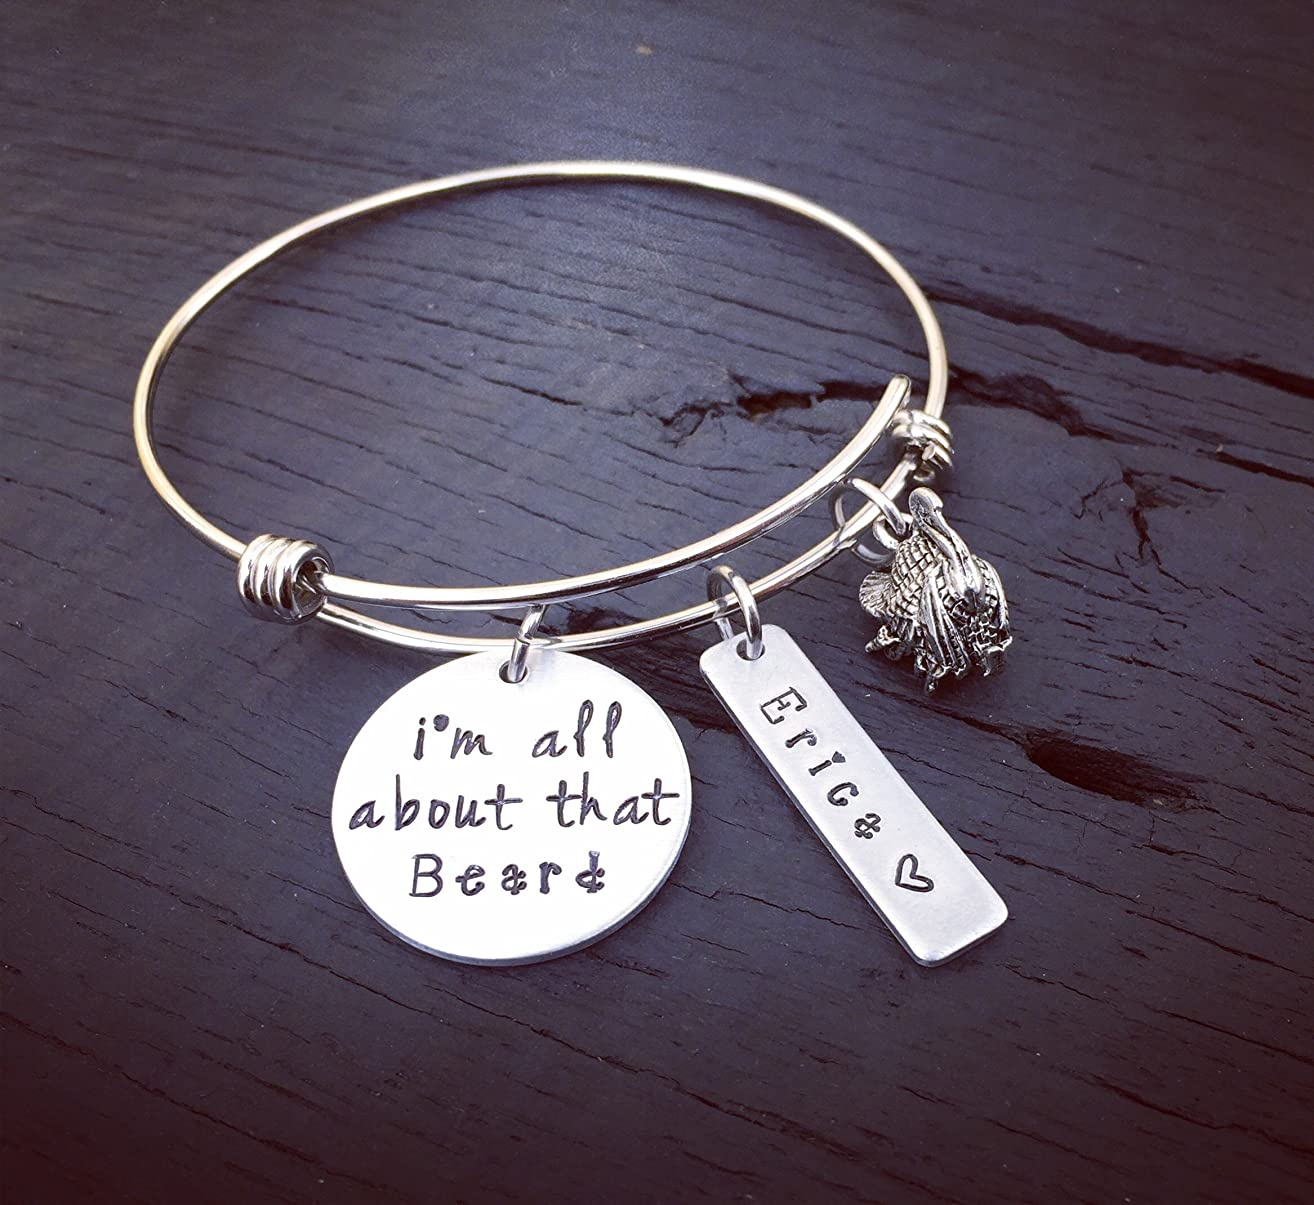 I'm All About That Beard Bracelet ? | Hunting Bracelet | Hunting Jewelry | Turkey Bracelet | Turkey Jewelry | Gift For Huntress | Bow Hunter